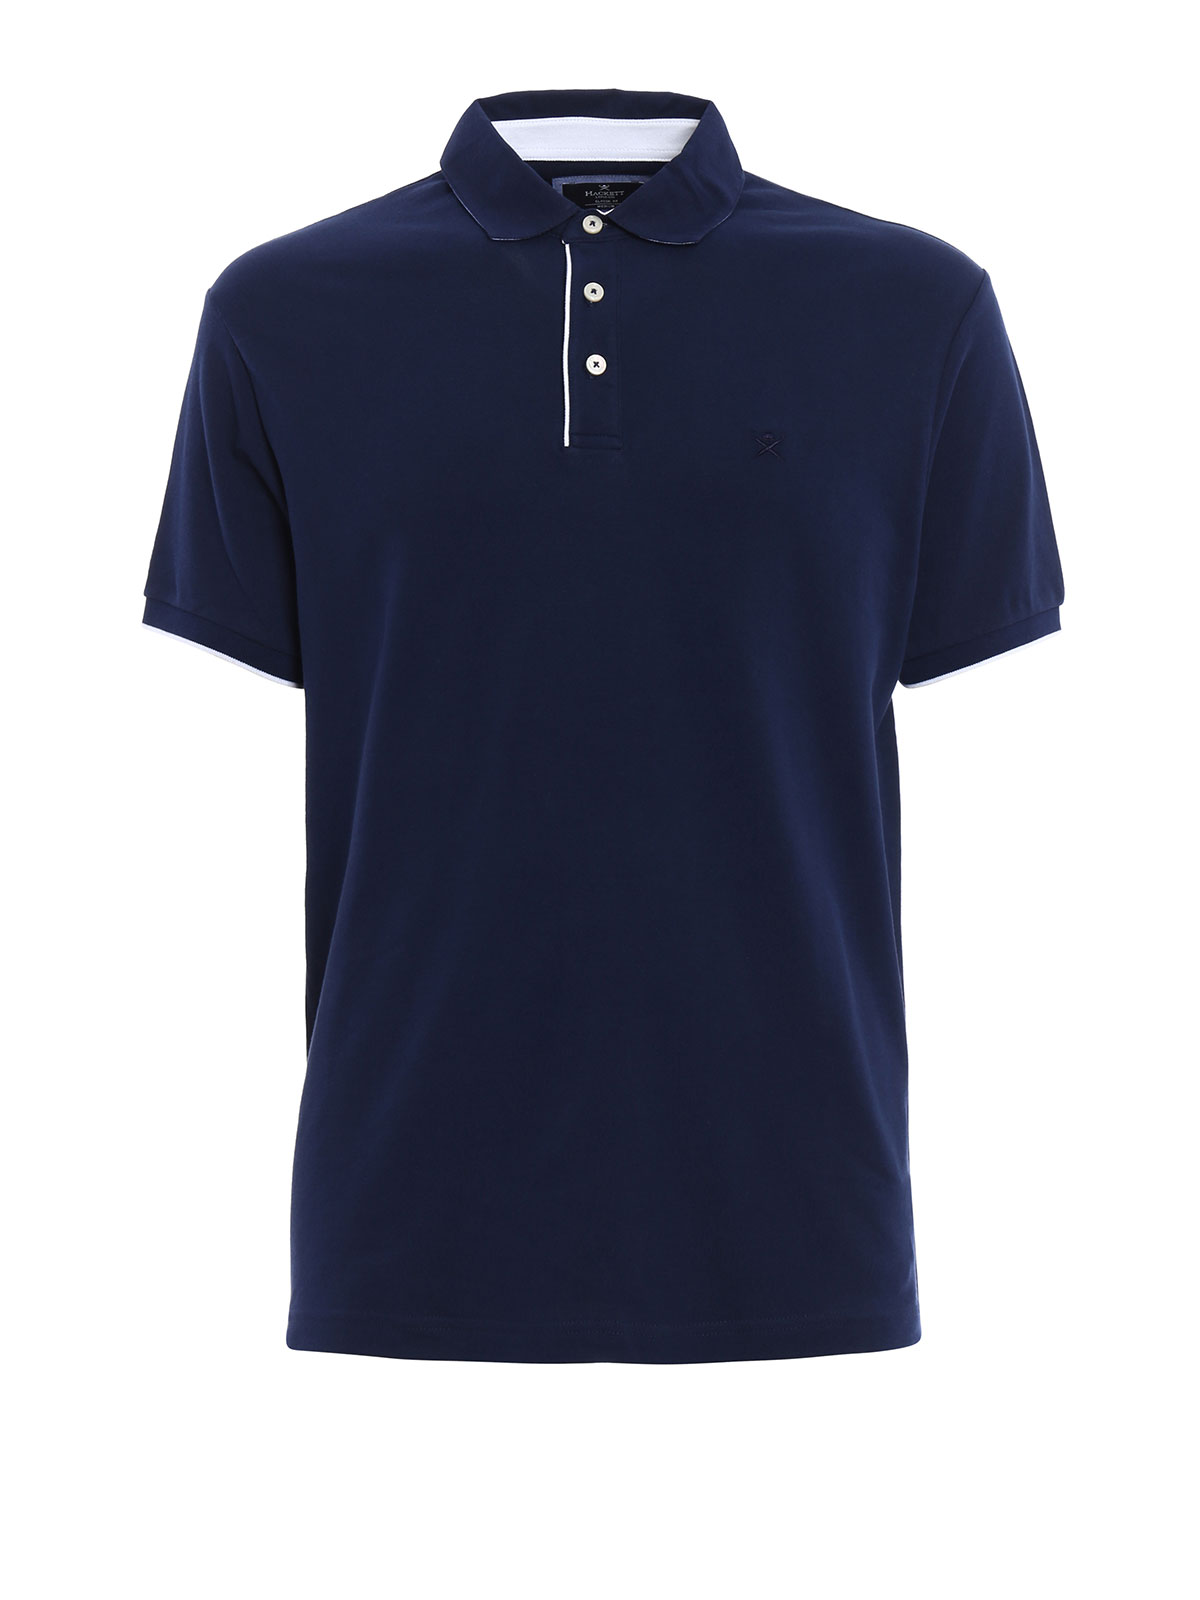 Cotton pique polo shirt by hackett polo shirts ikrix for Cotton on polo shirt